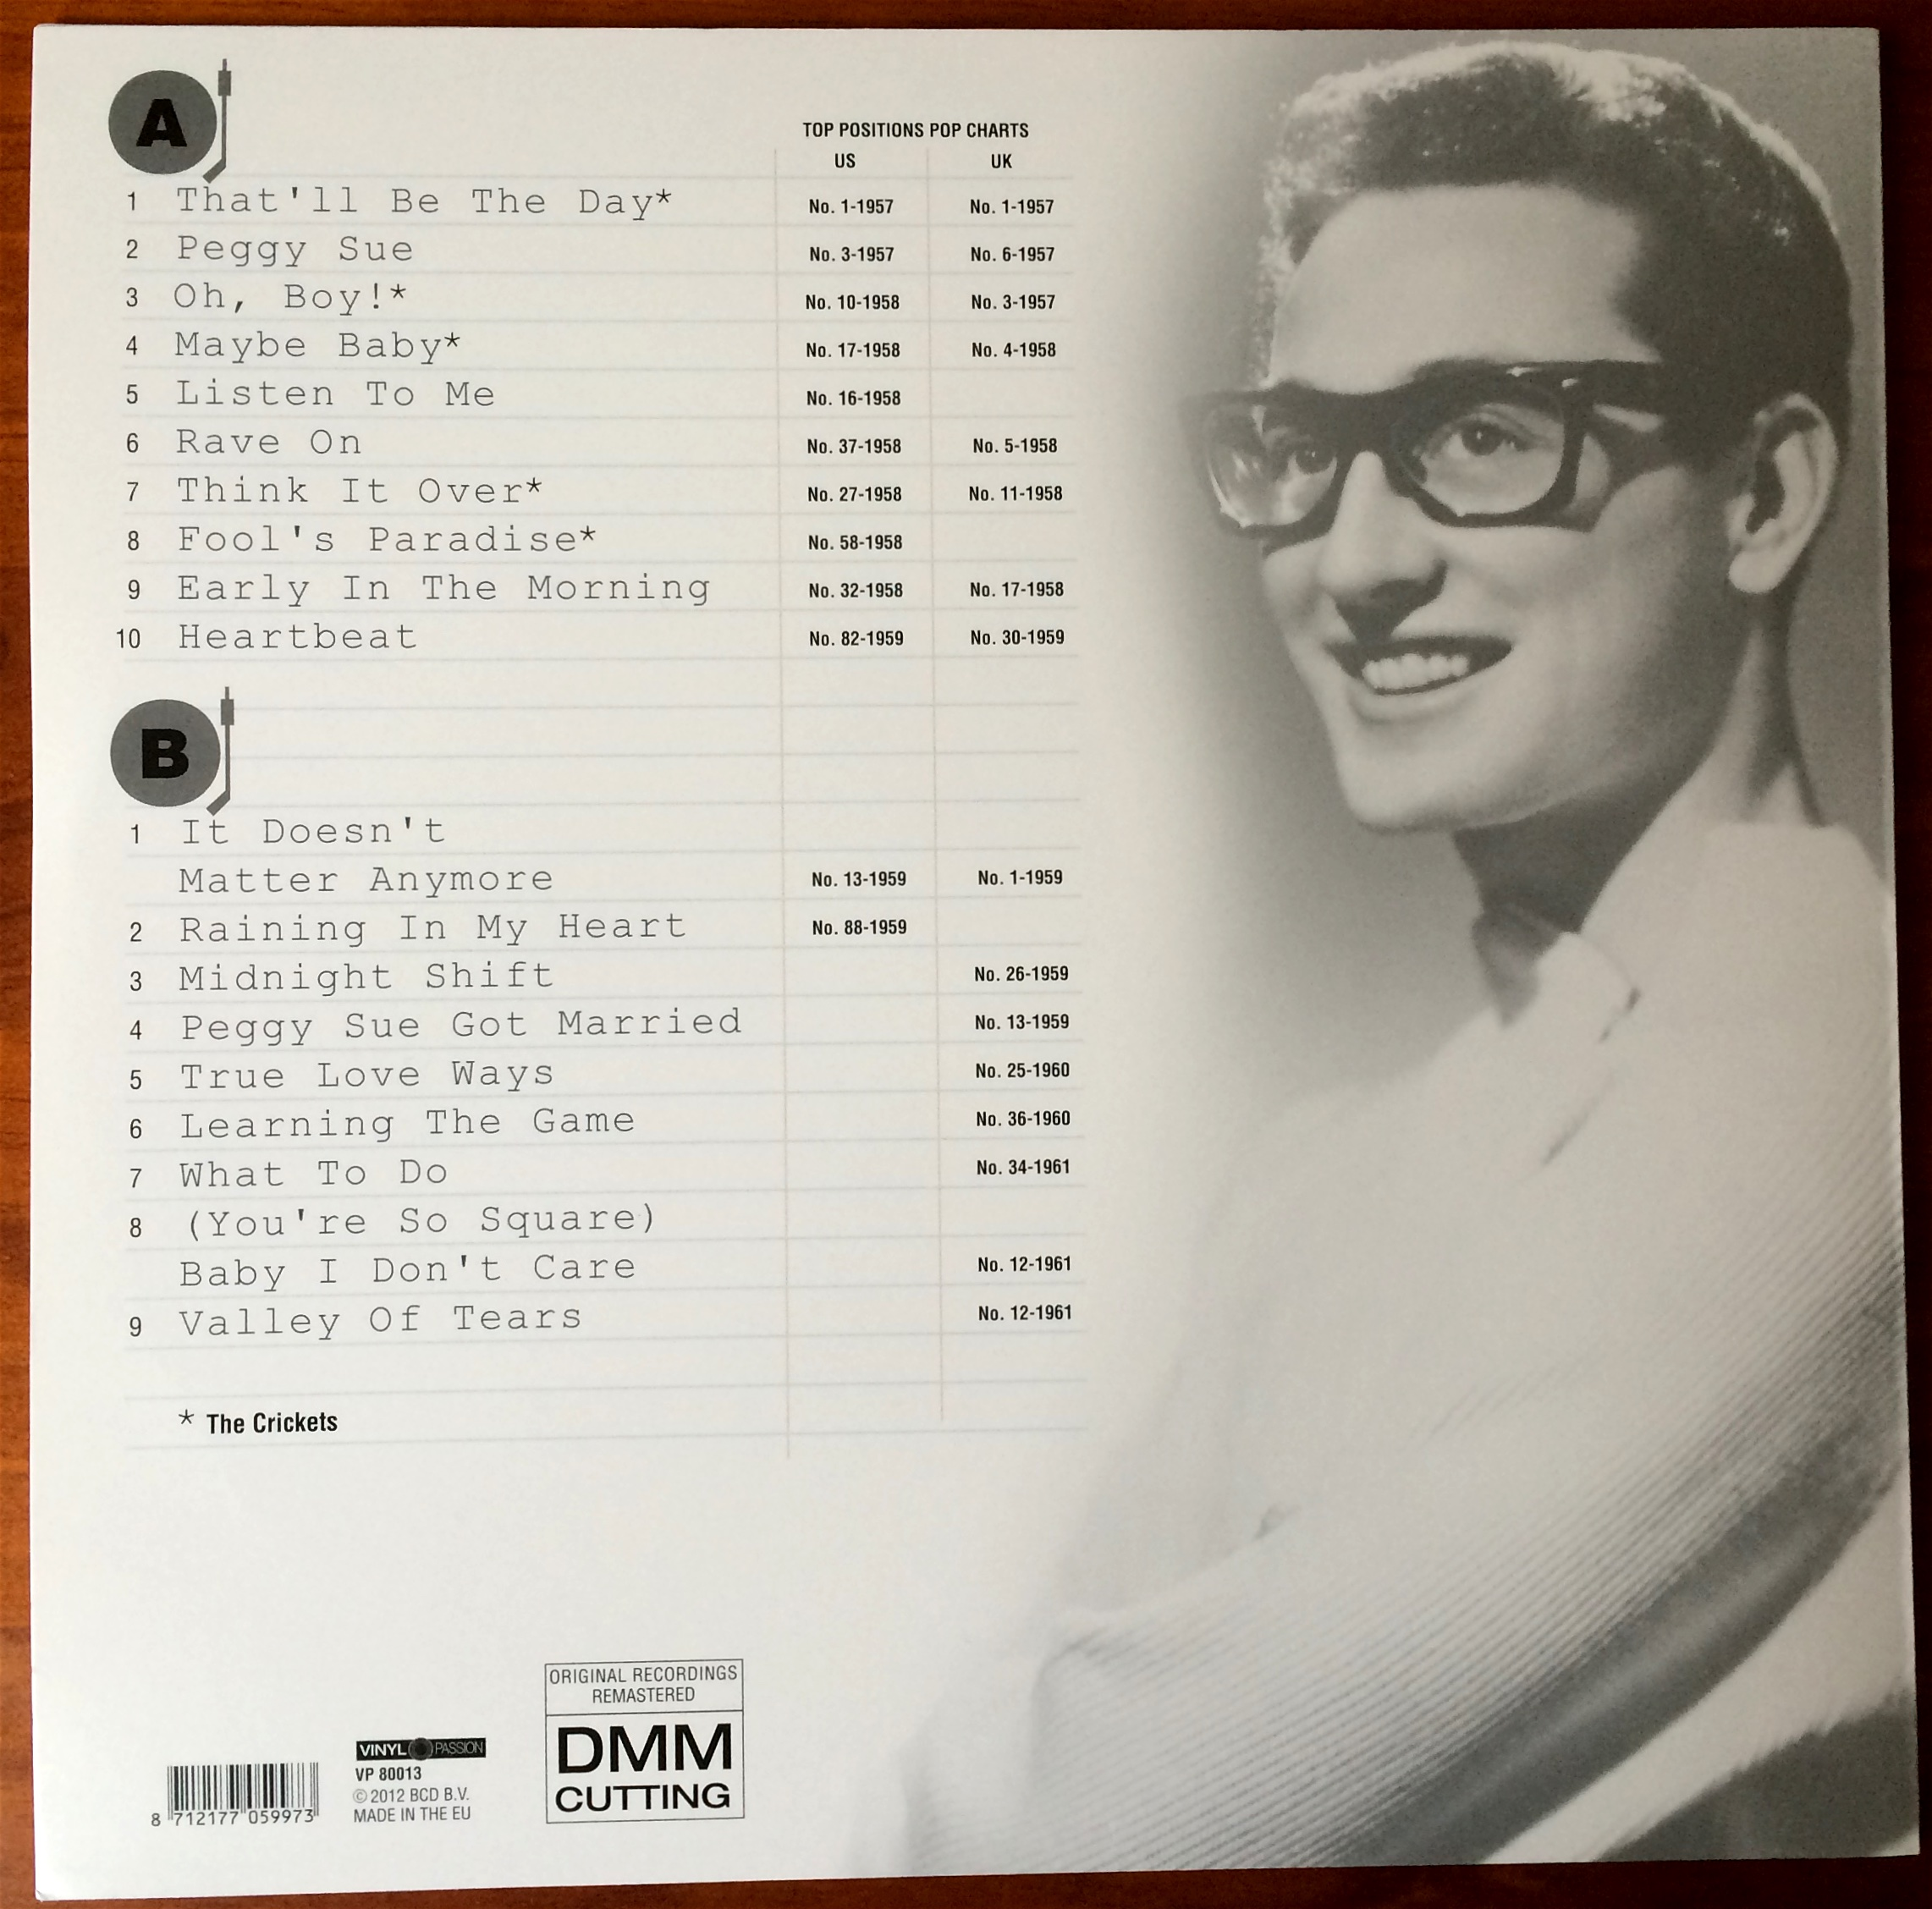 Buddy_Holly_Greatest_Hits_3.JPG